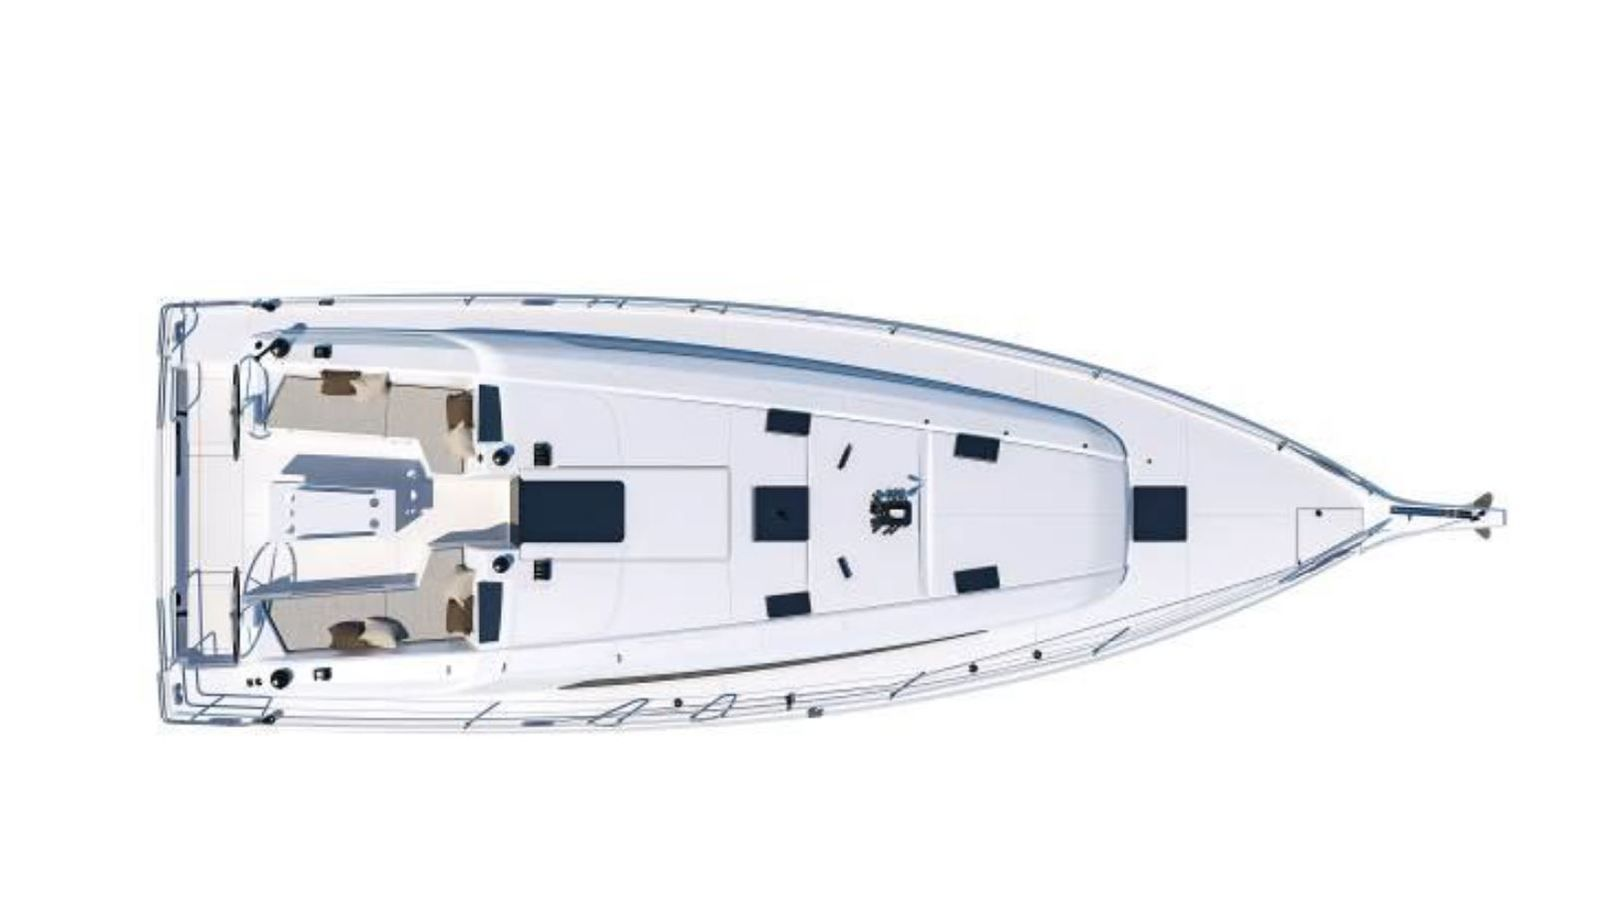 The different layouts of the Bénéteau Oceanis 40.1